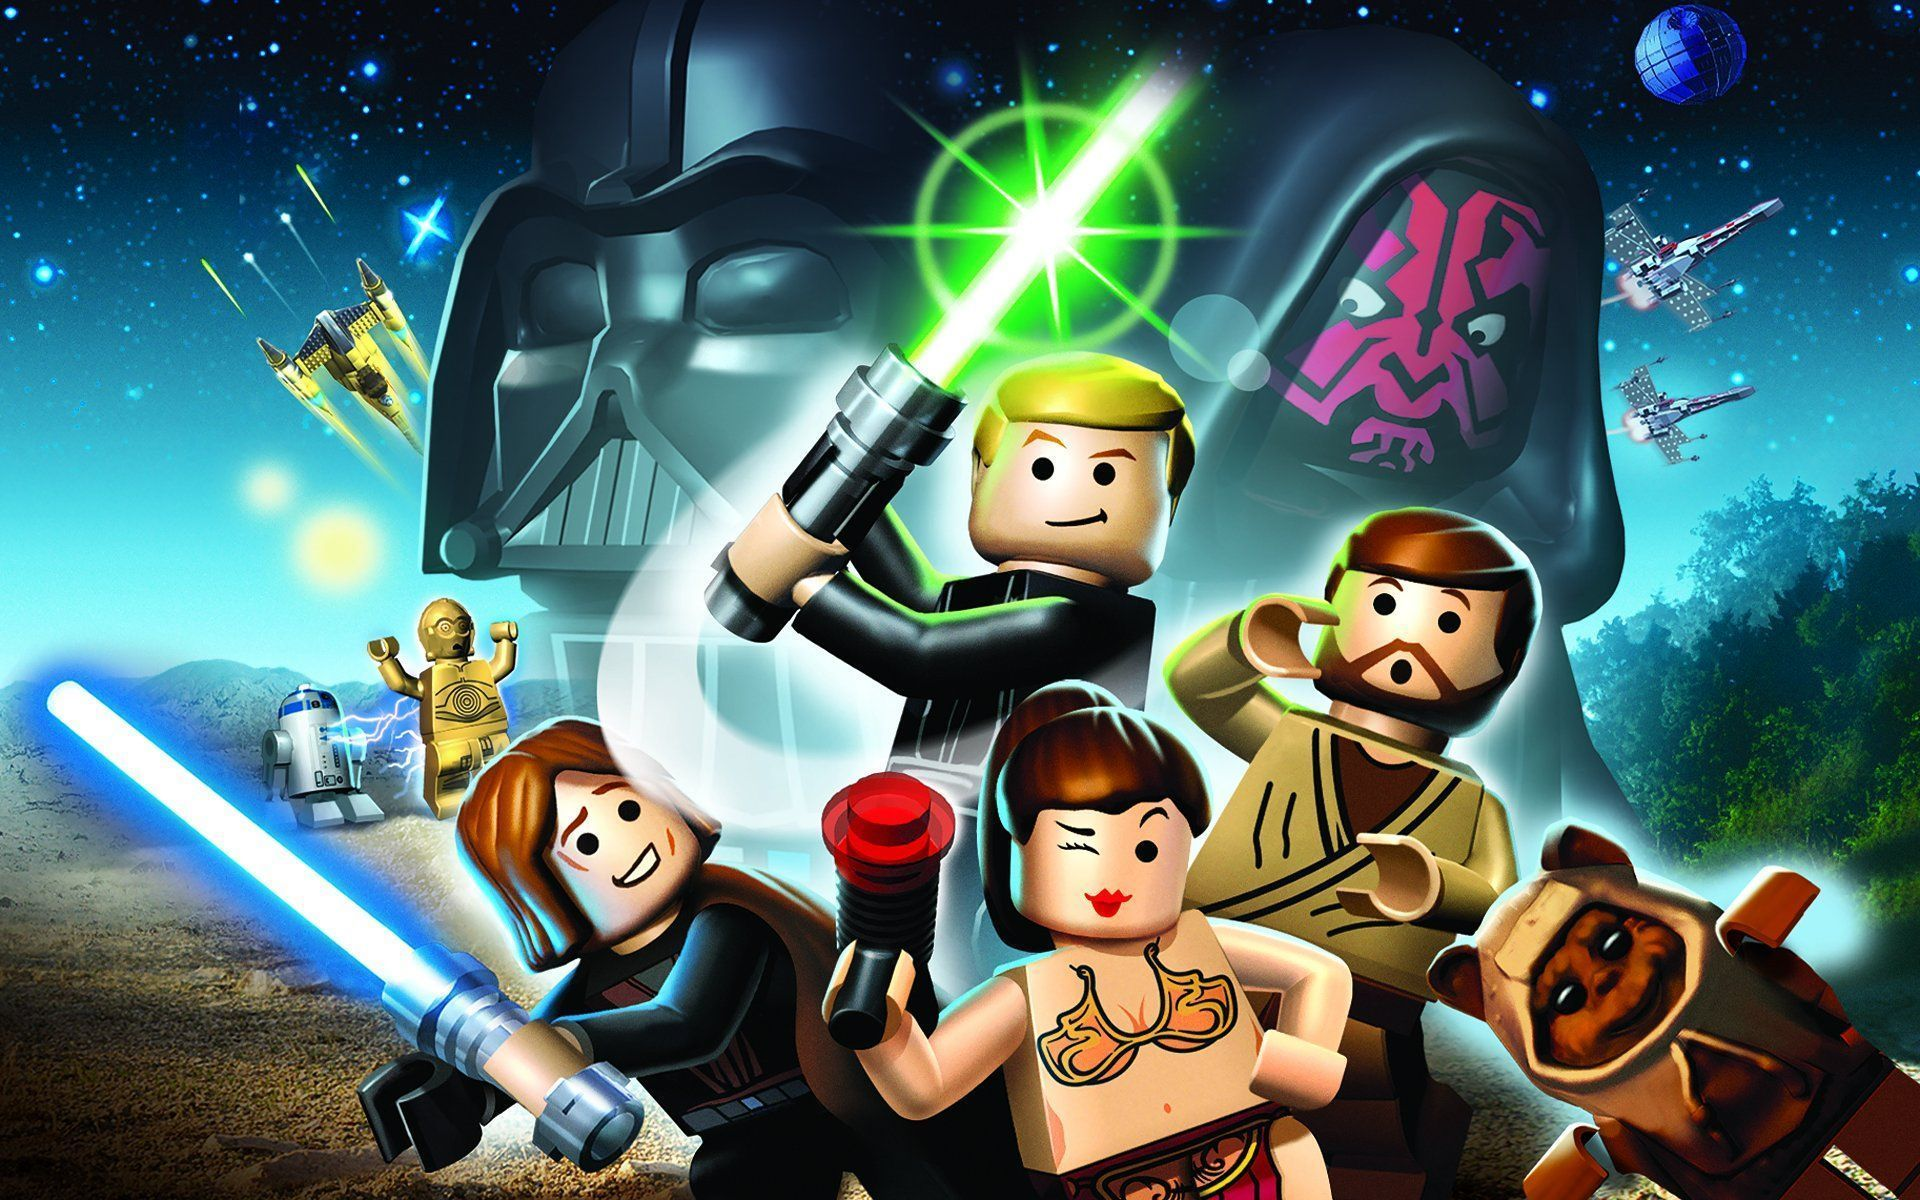 Star Wars Clipart And Screensavers.